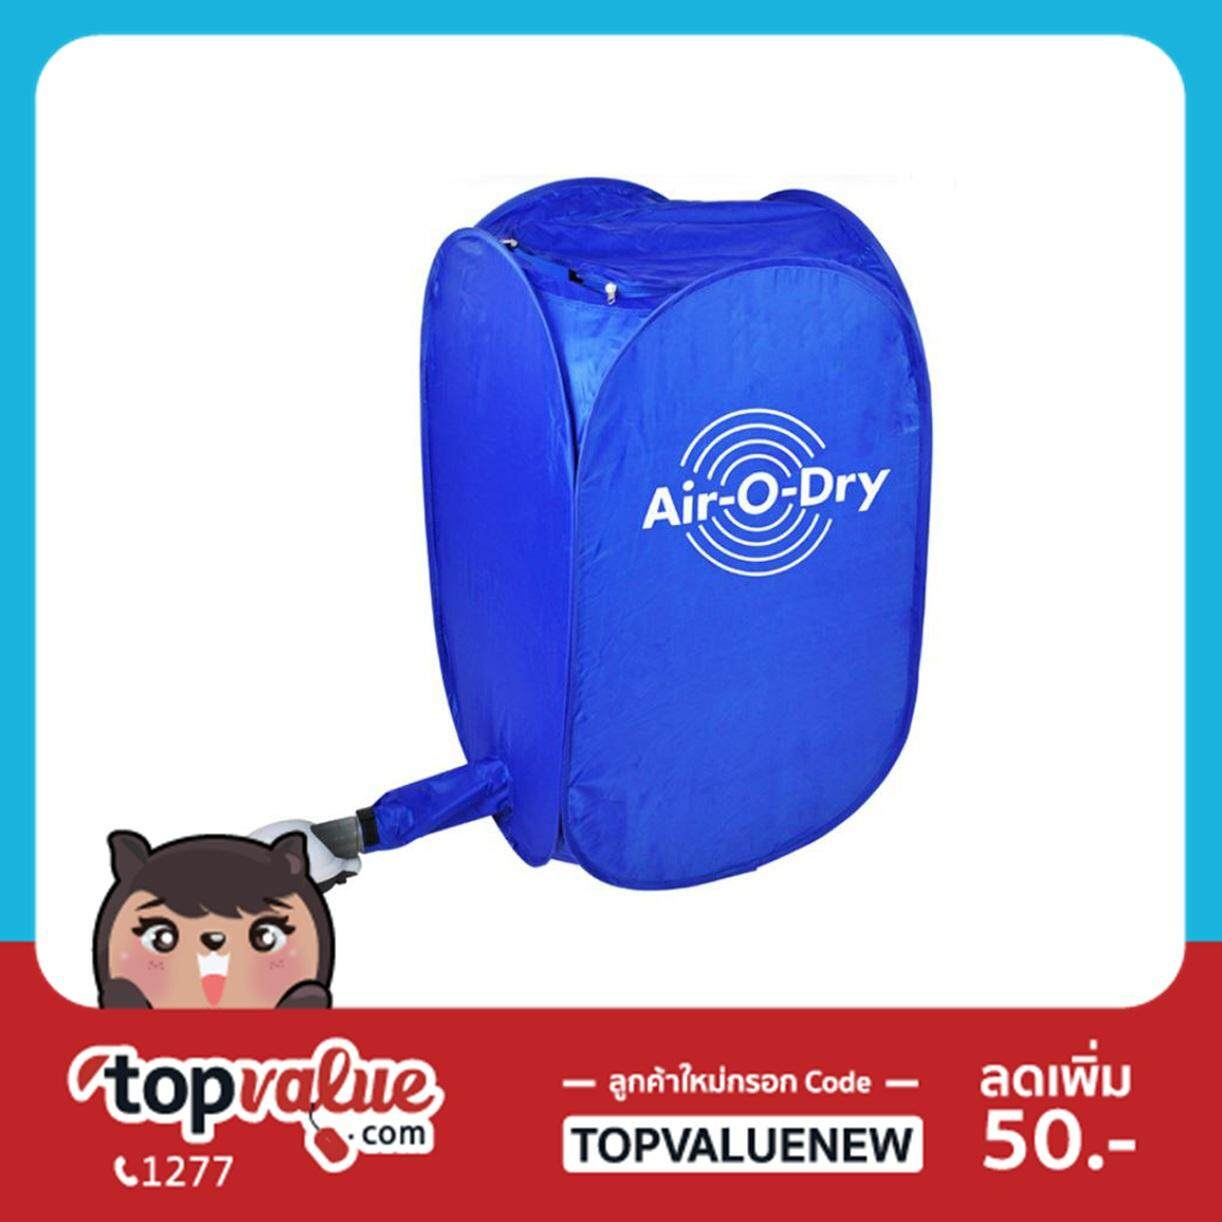 Air-O-Dry เครื่องอบผ้าแห้งไฟฟ้า 5kg/800w แบบพกพา รุ่น Kd-111 By Topvalue Corporate.